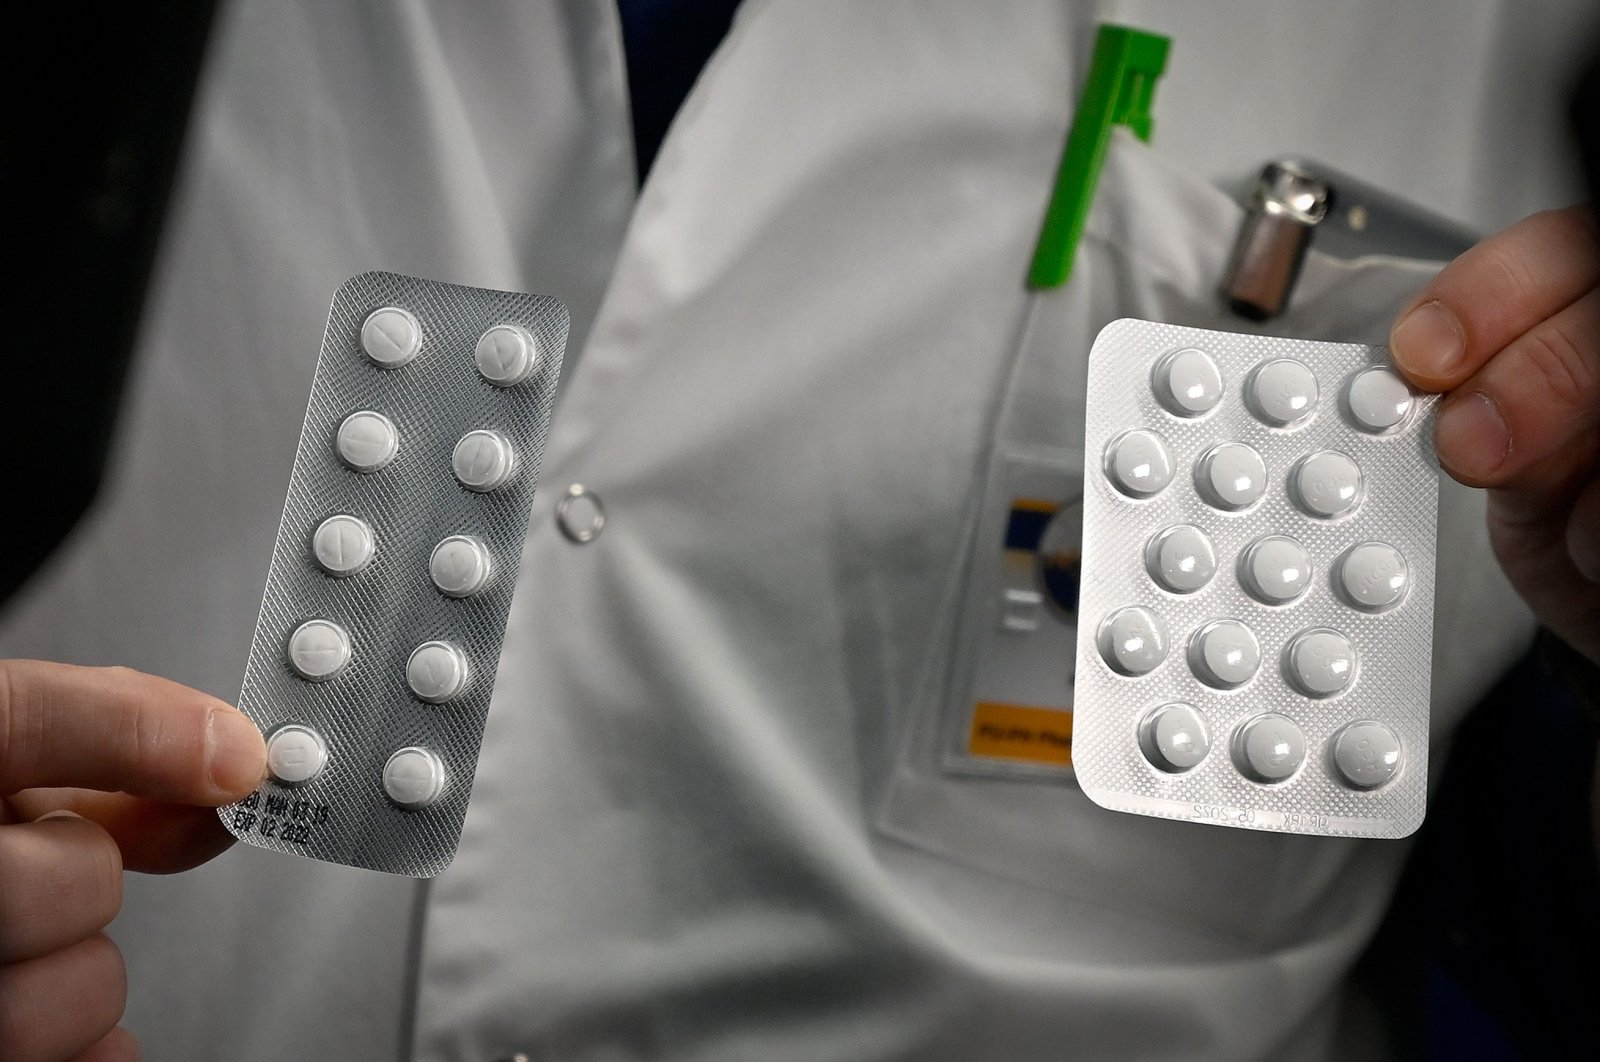 Medical personnel at the IHU Méditerranée Infection Institute in Marseille, packets of a Nivaquine, tablets containing chloroquine and Plaqueril, tablets containing hydroxychloroquine, drugs that have shown signs of effectiveness against coronavirus, Feb. 26, 2020. (AFP Photo)